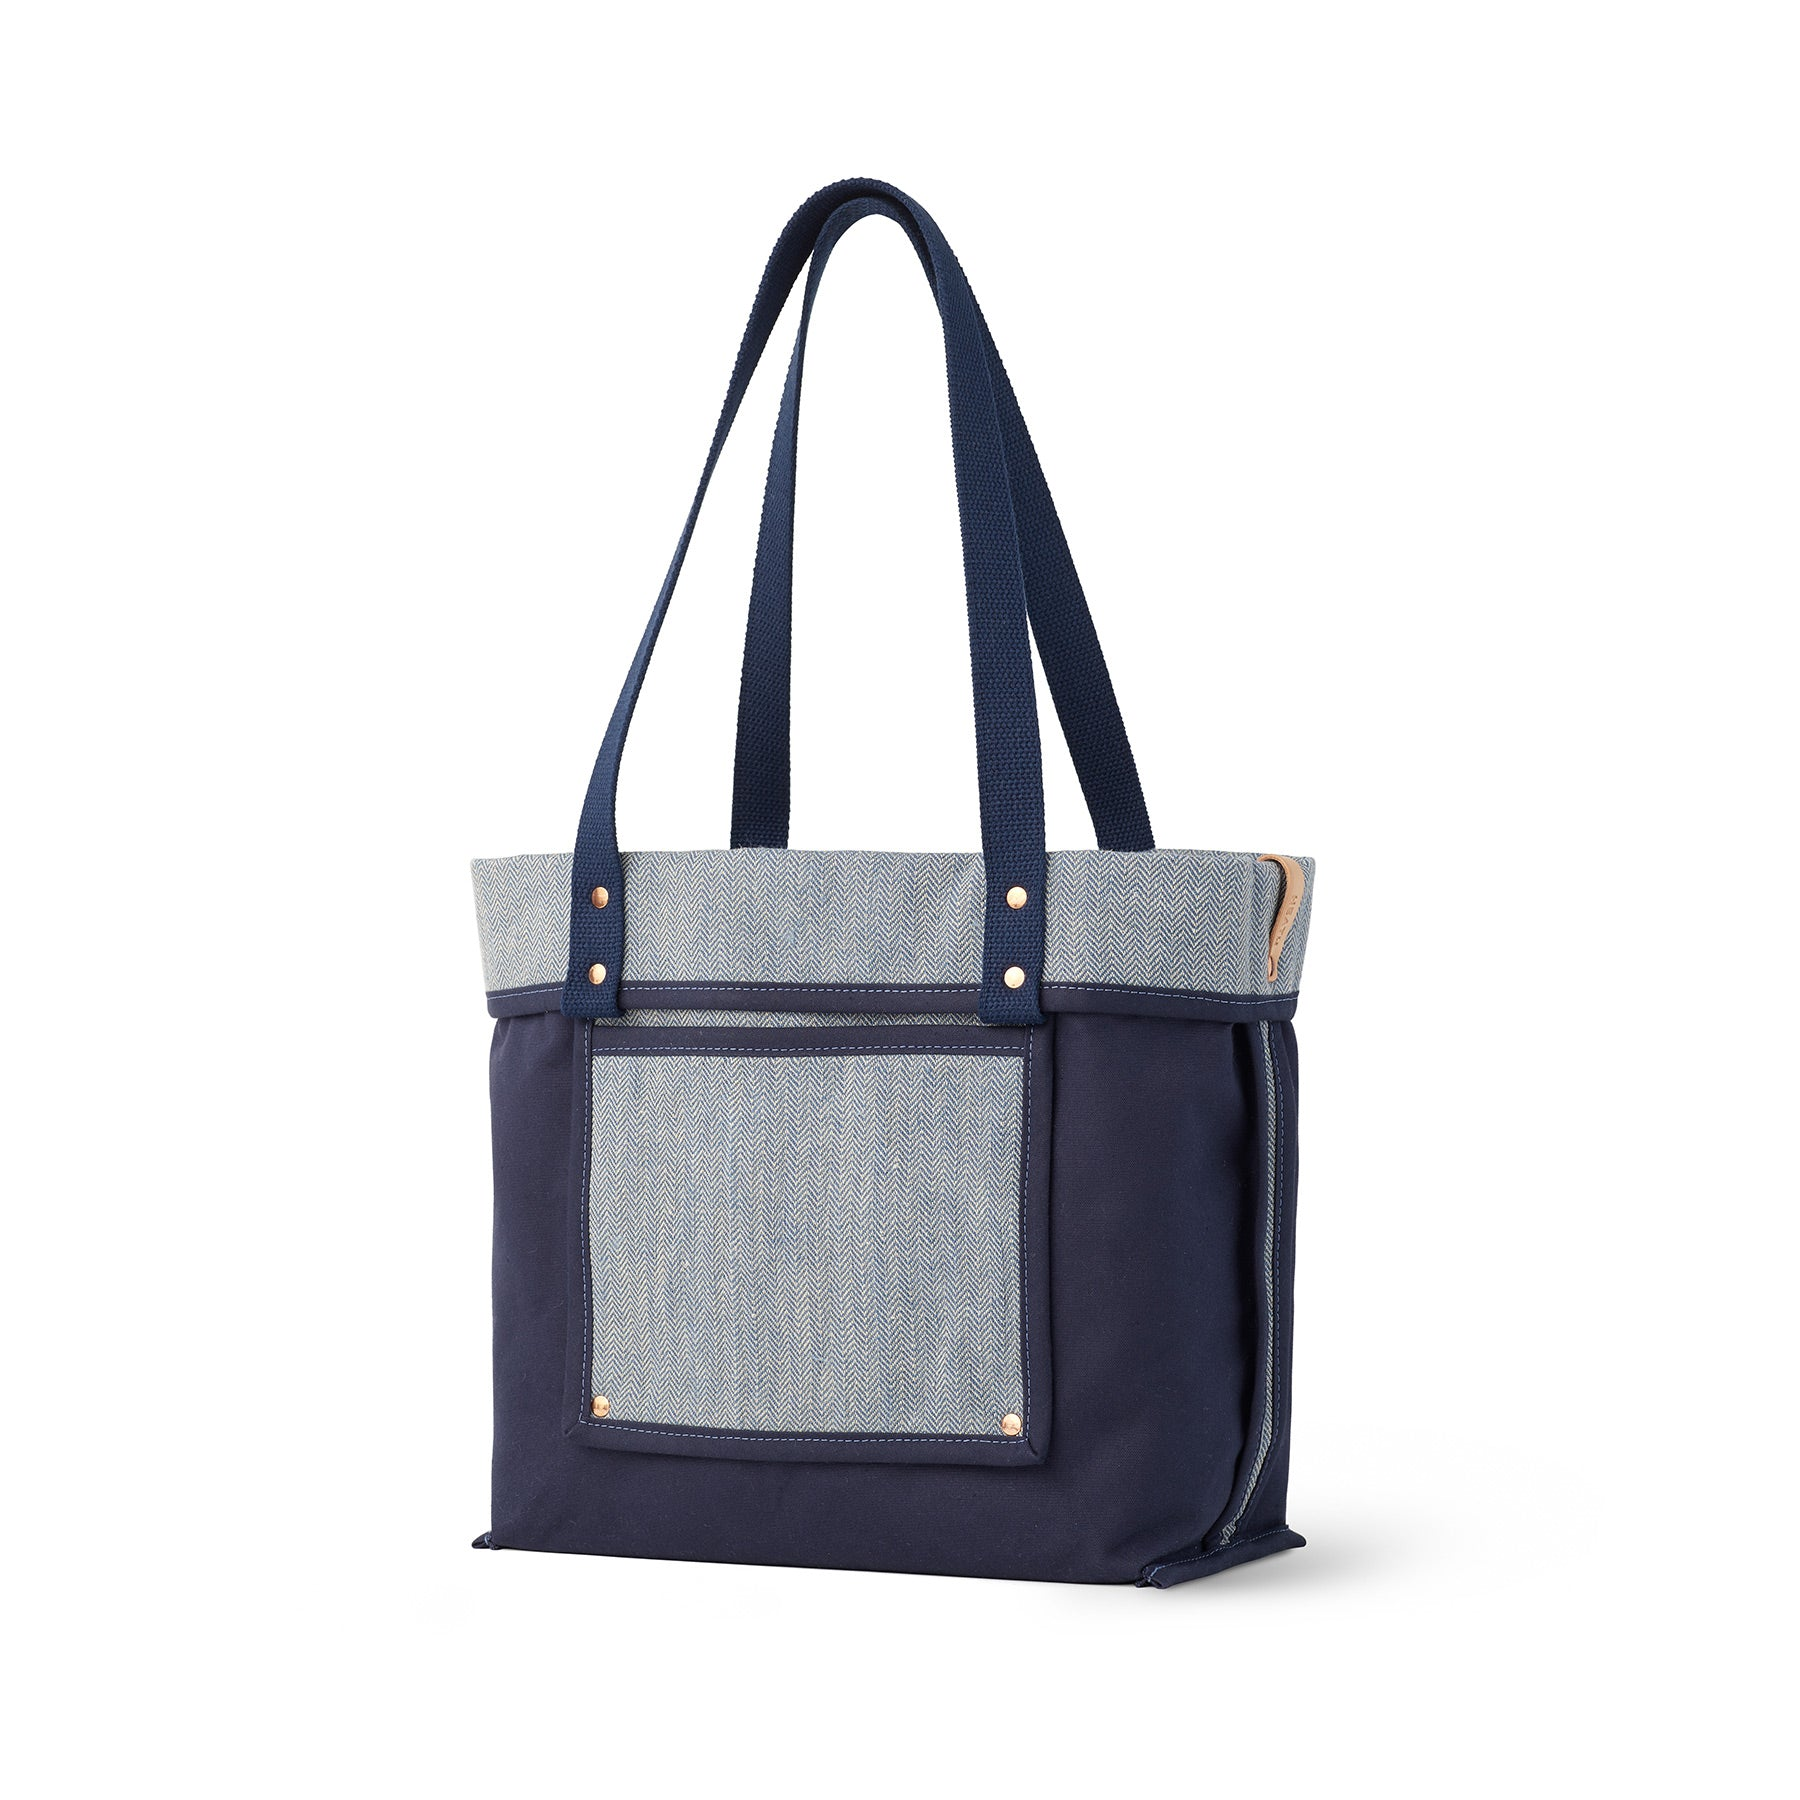 Linen Reversible Tote in Heron Blue Zoom Image 1